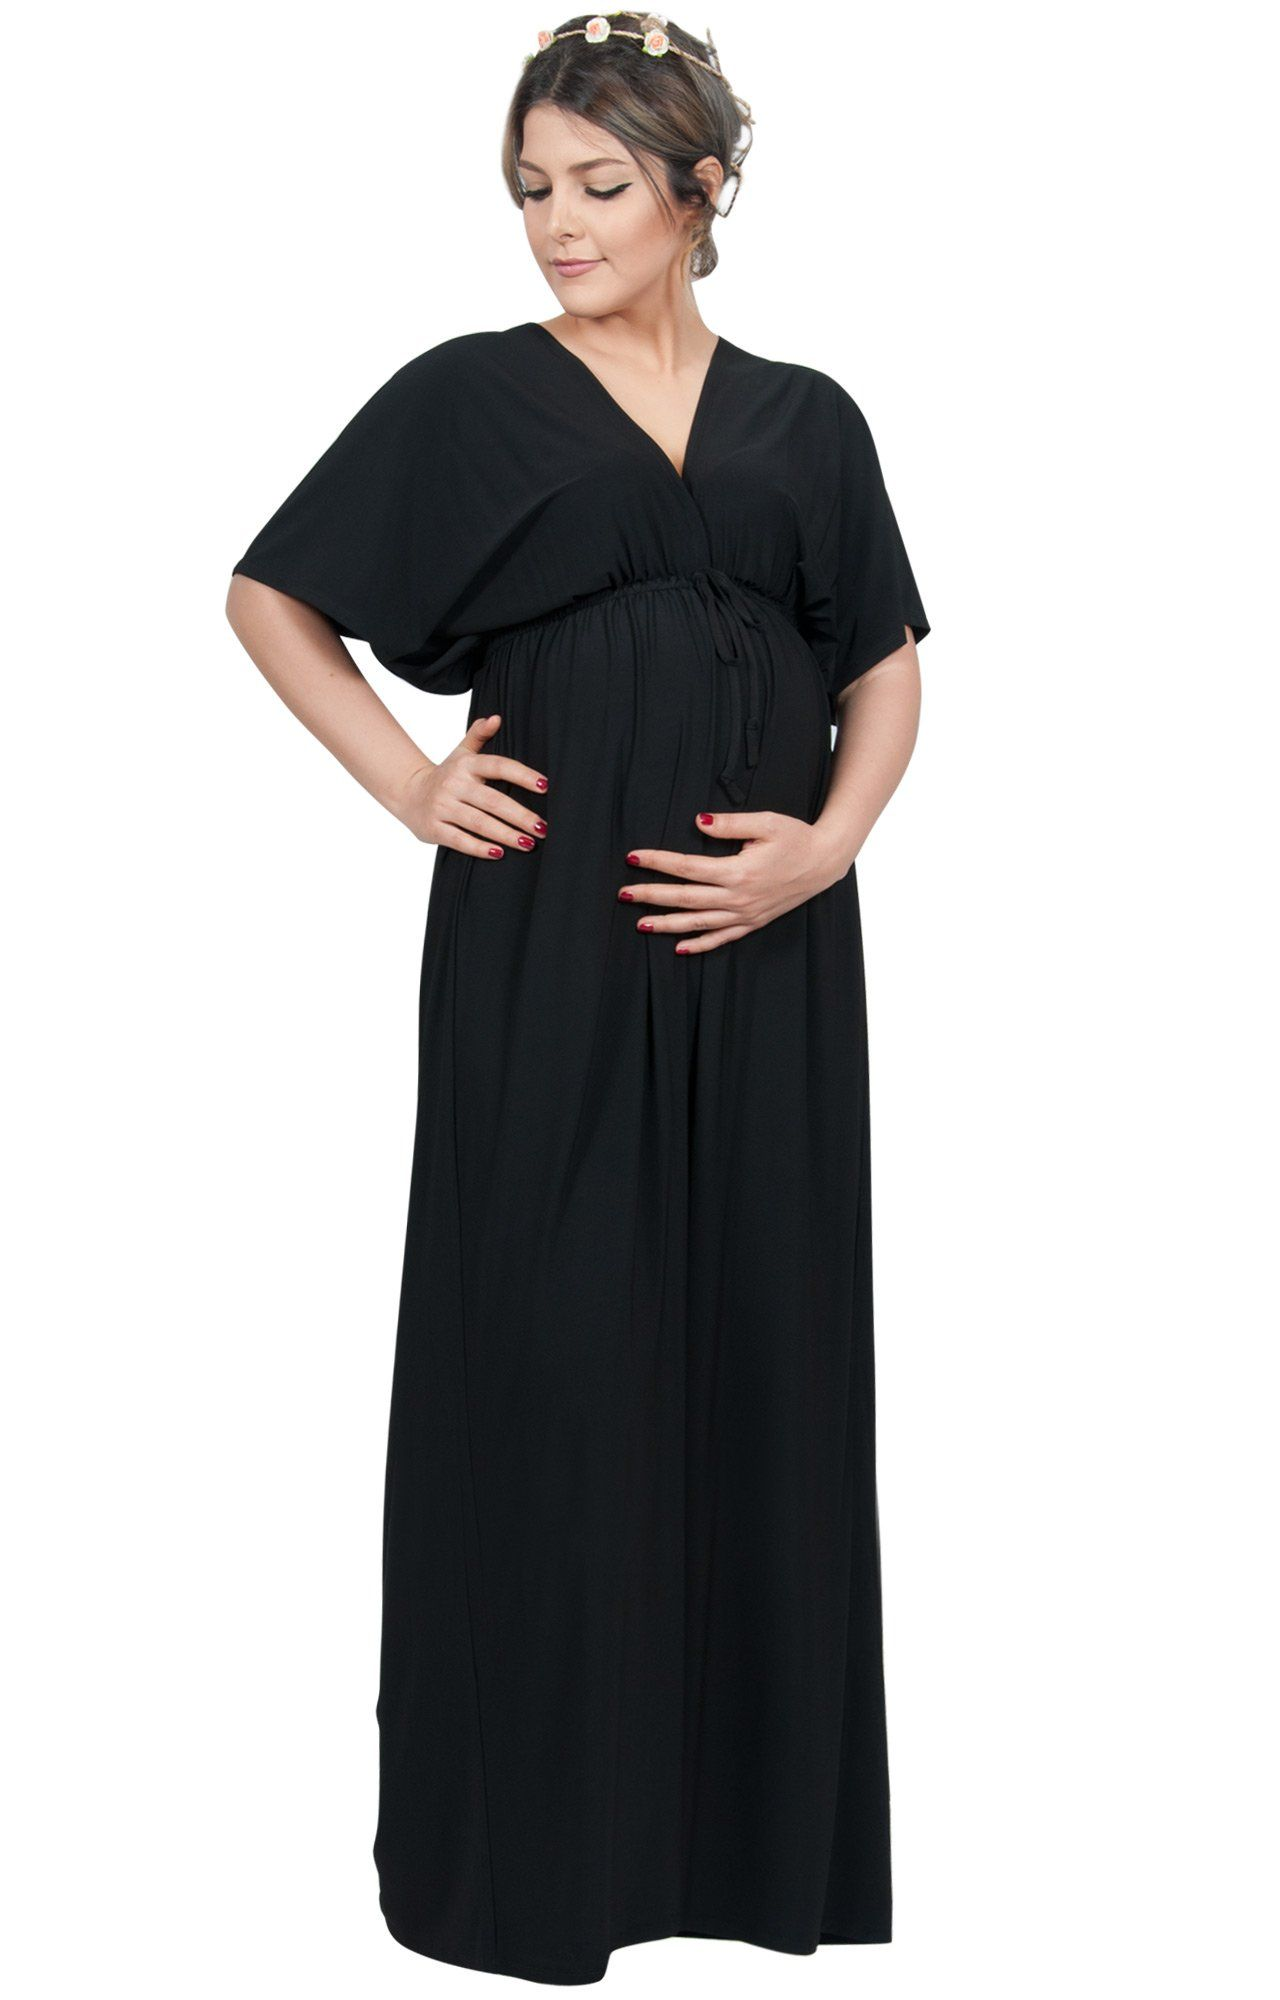 Women maternity clothes koh koh plus size womens long maternity